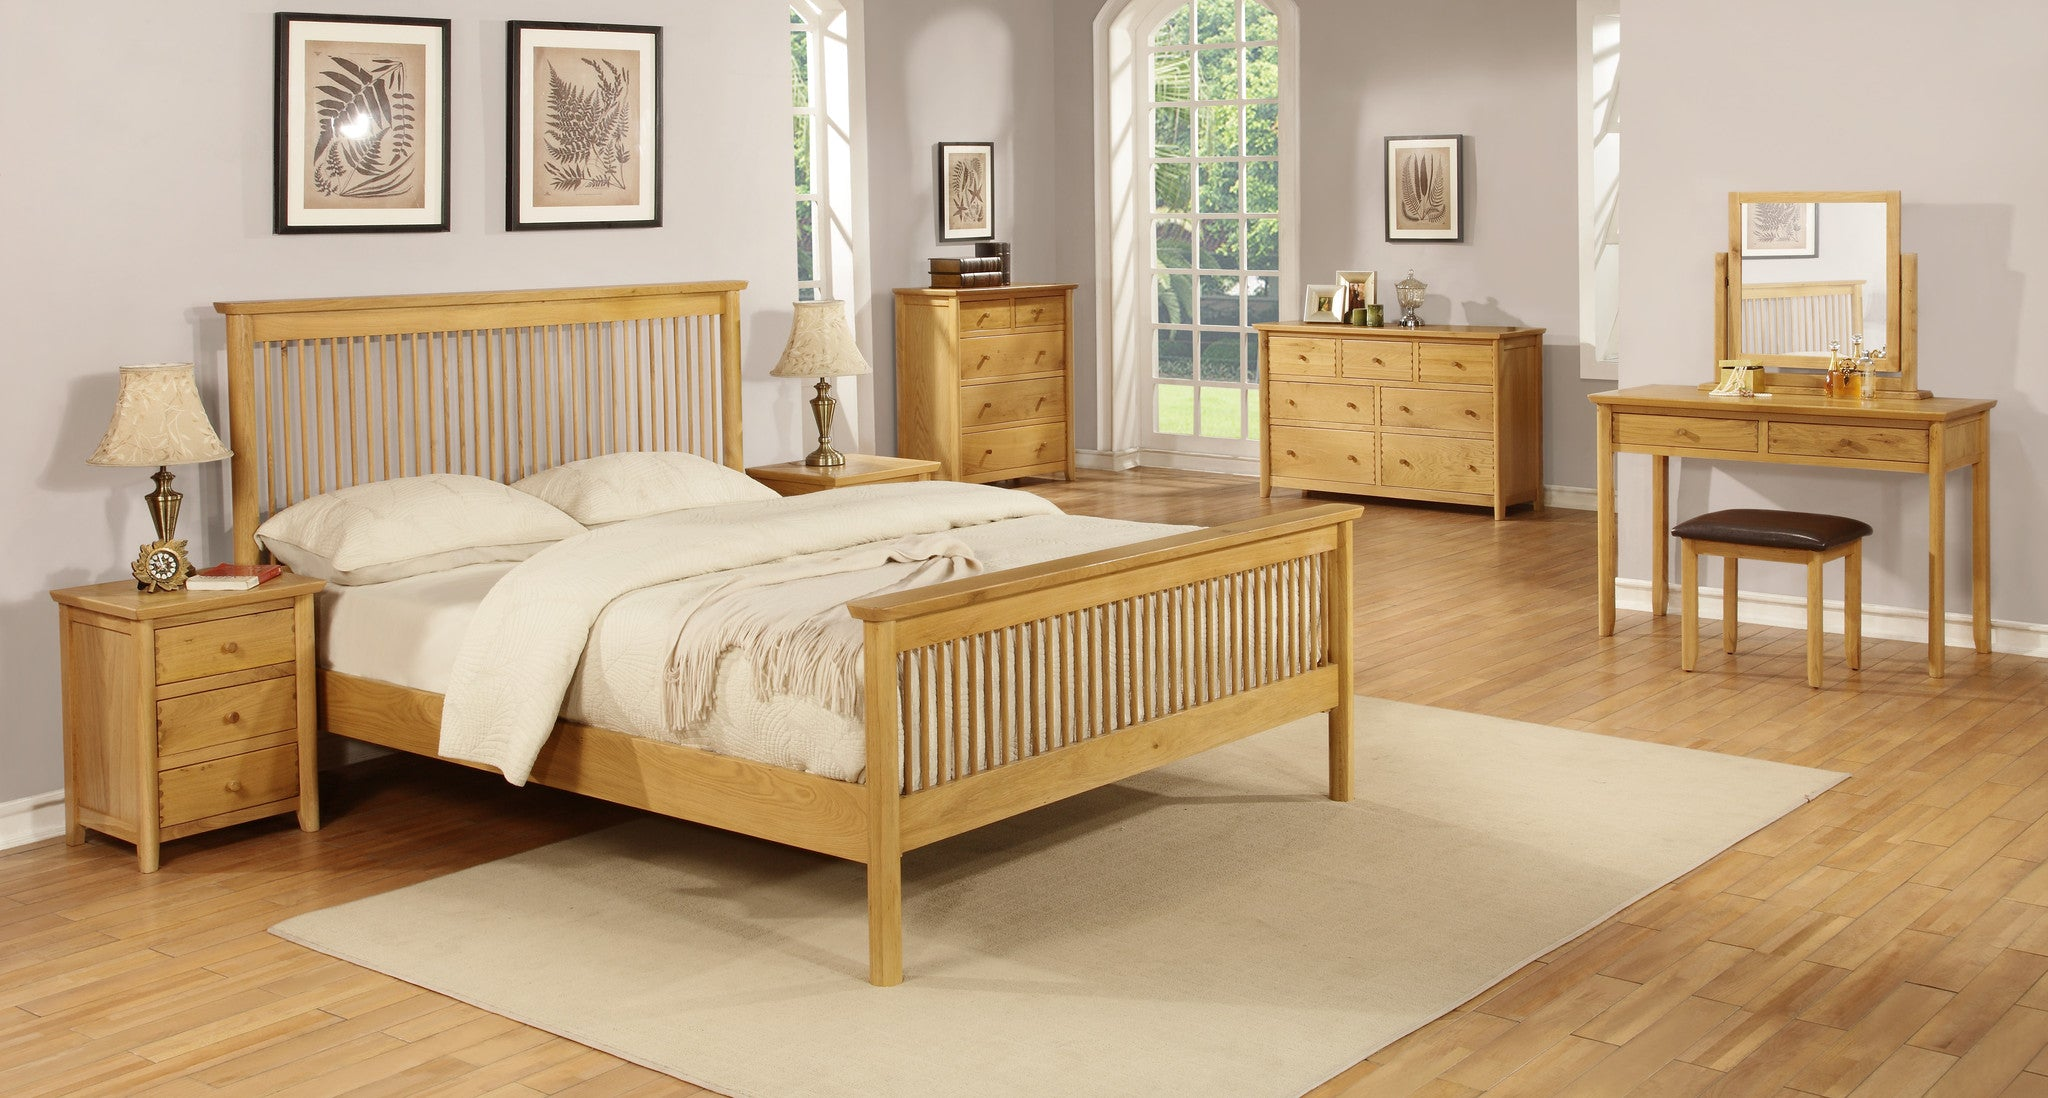 Hamilton solid oak Bedroom